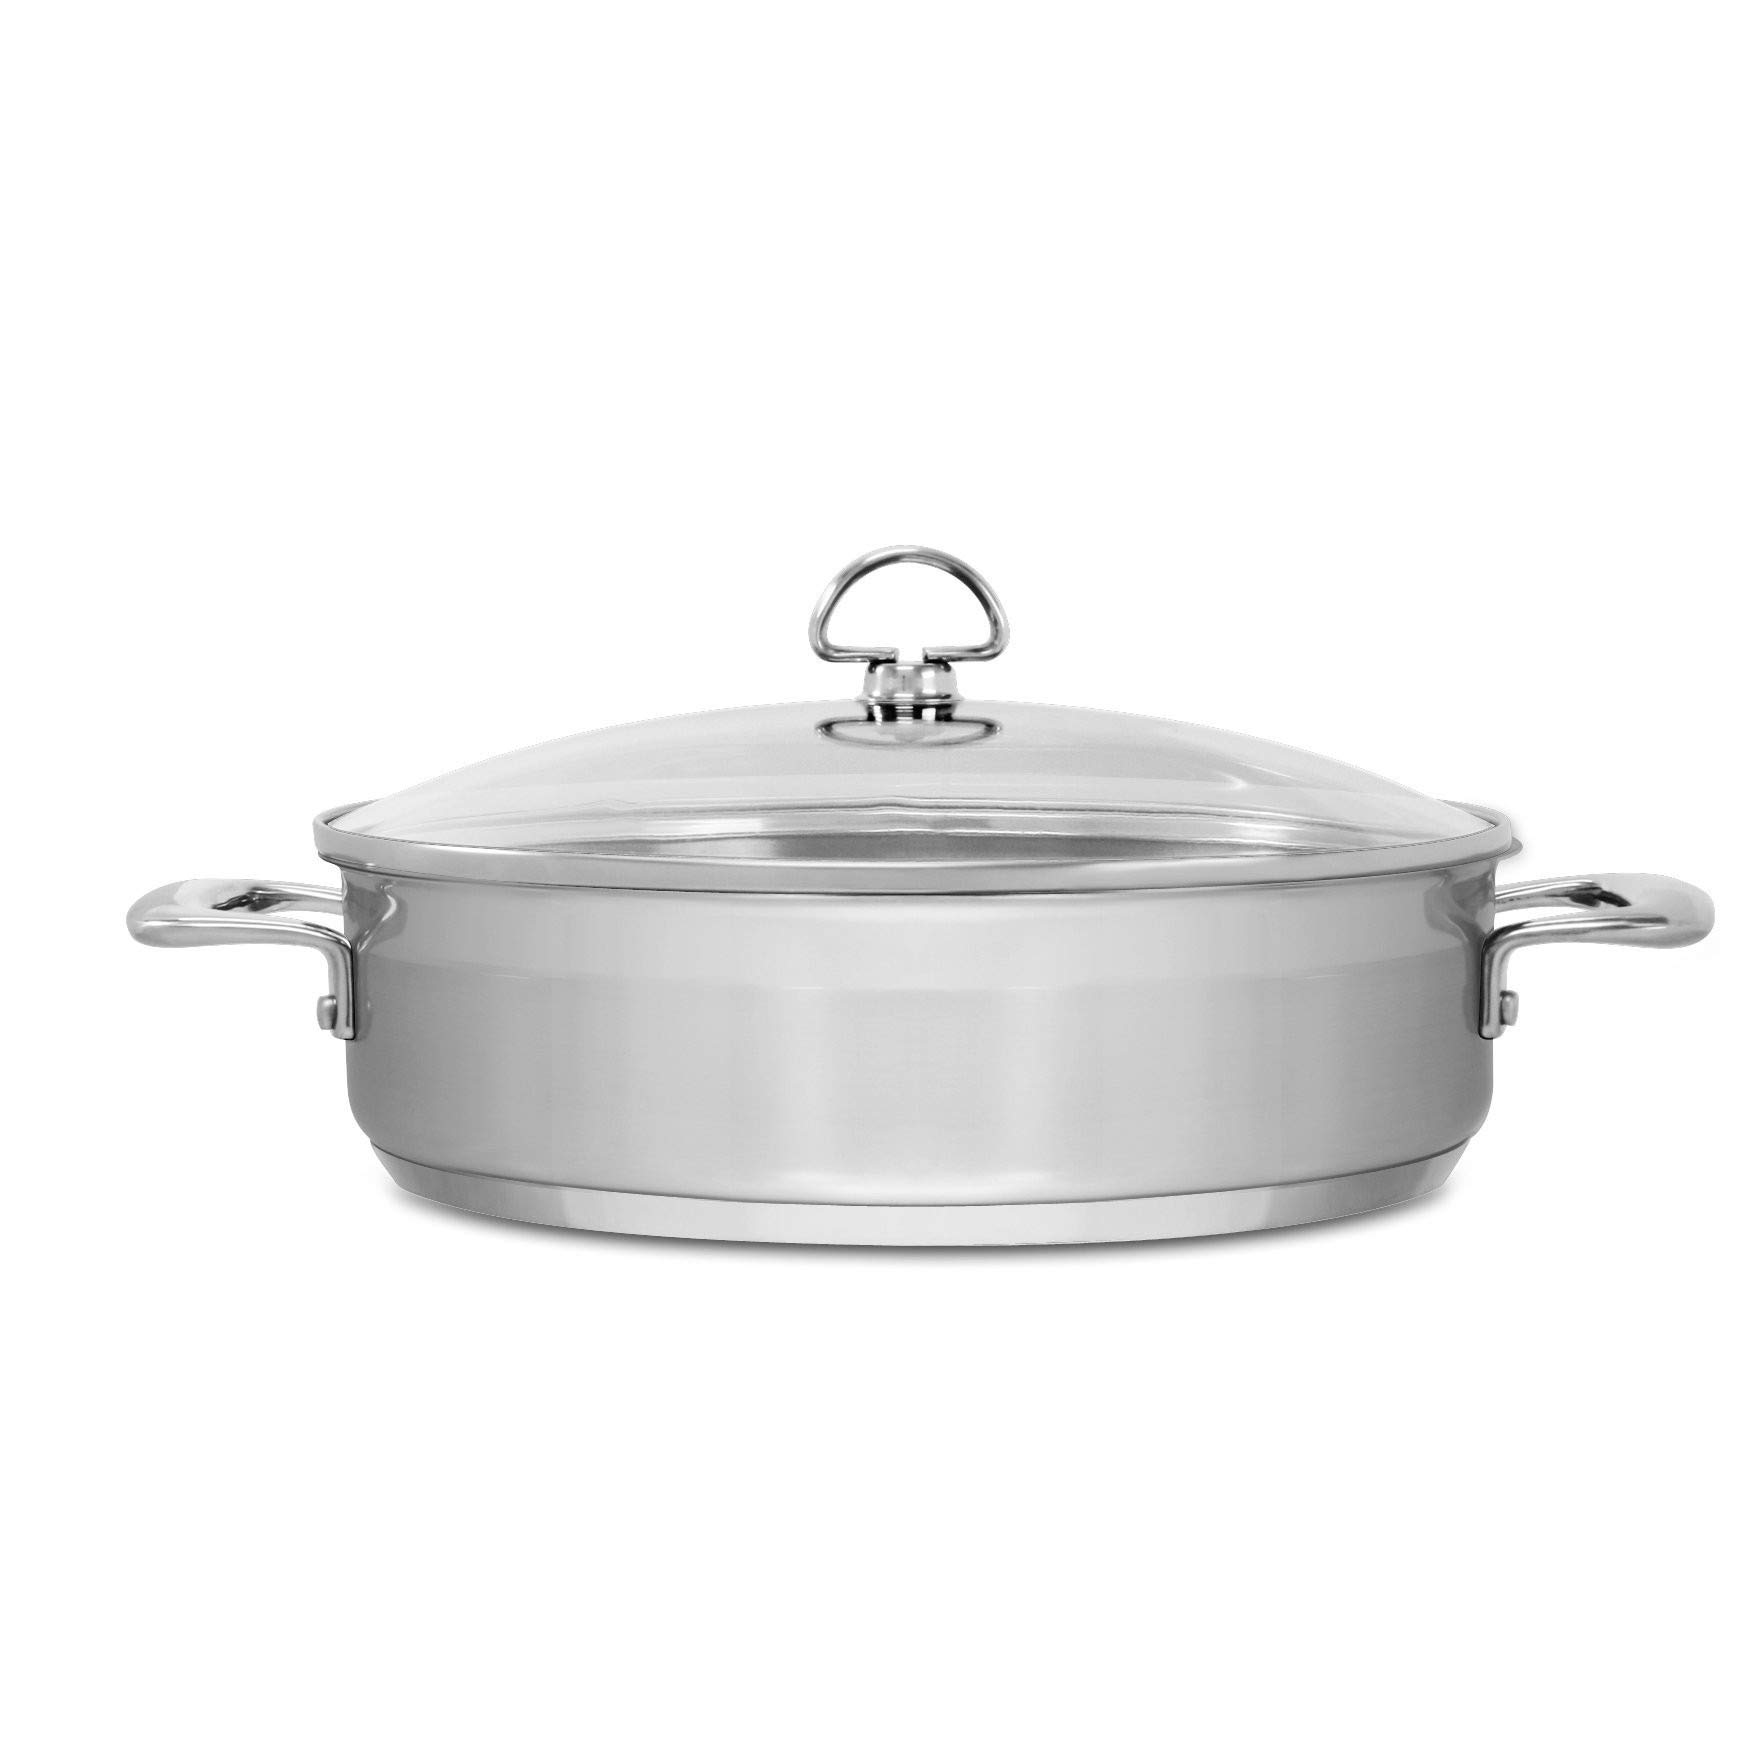 Chantal SLIN29-280 Induction 21 Steel Sauteuse with Glass Tempered Lid (5-Quart) by Chantal